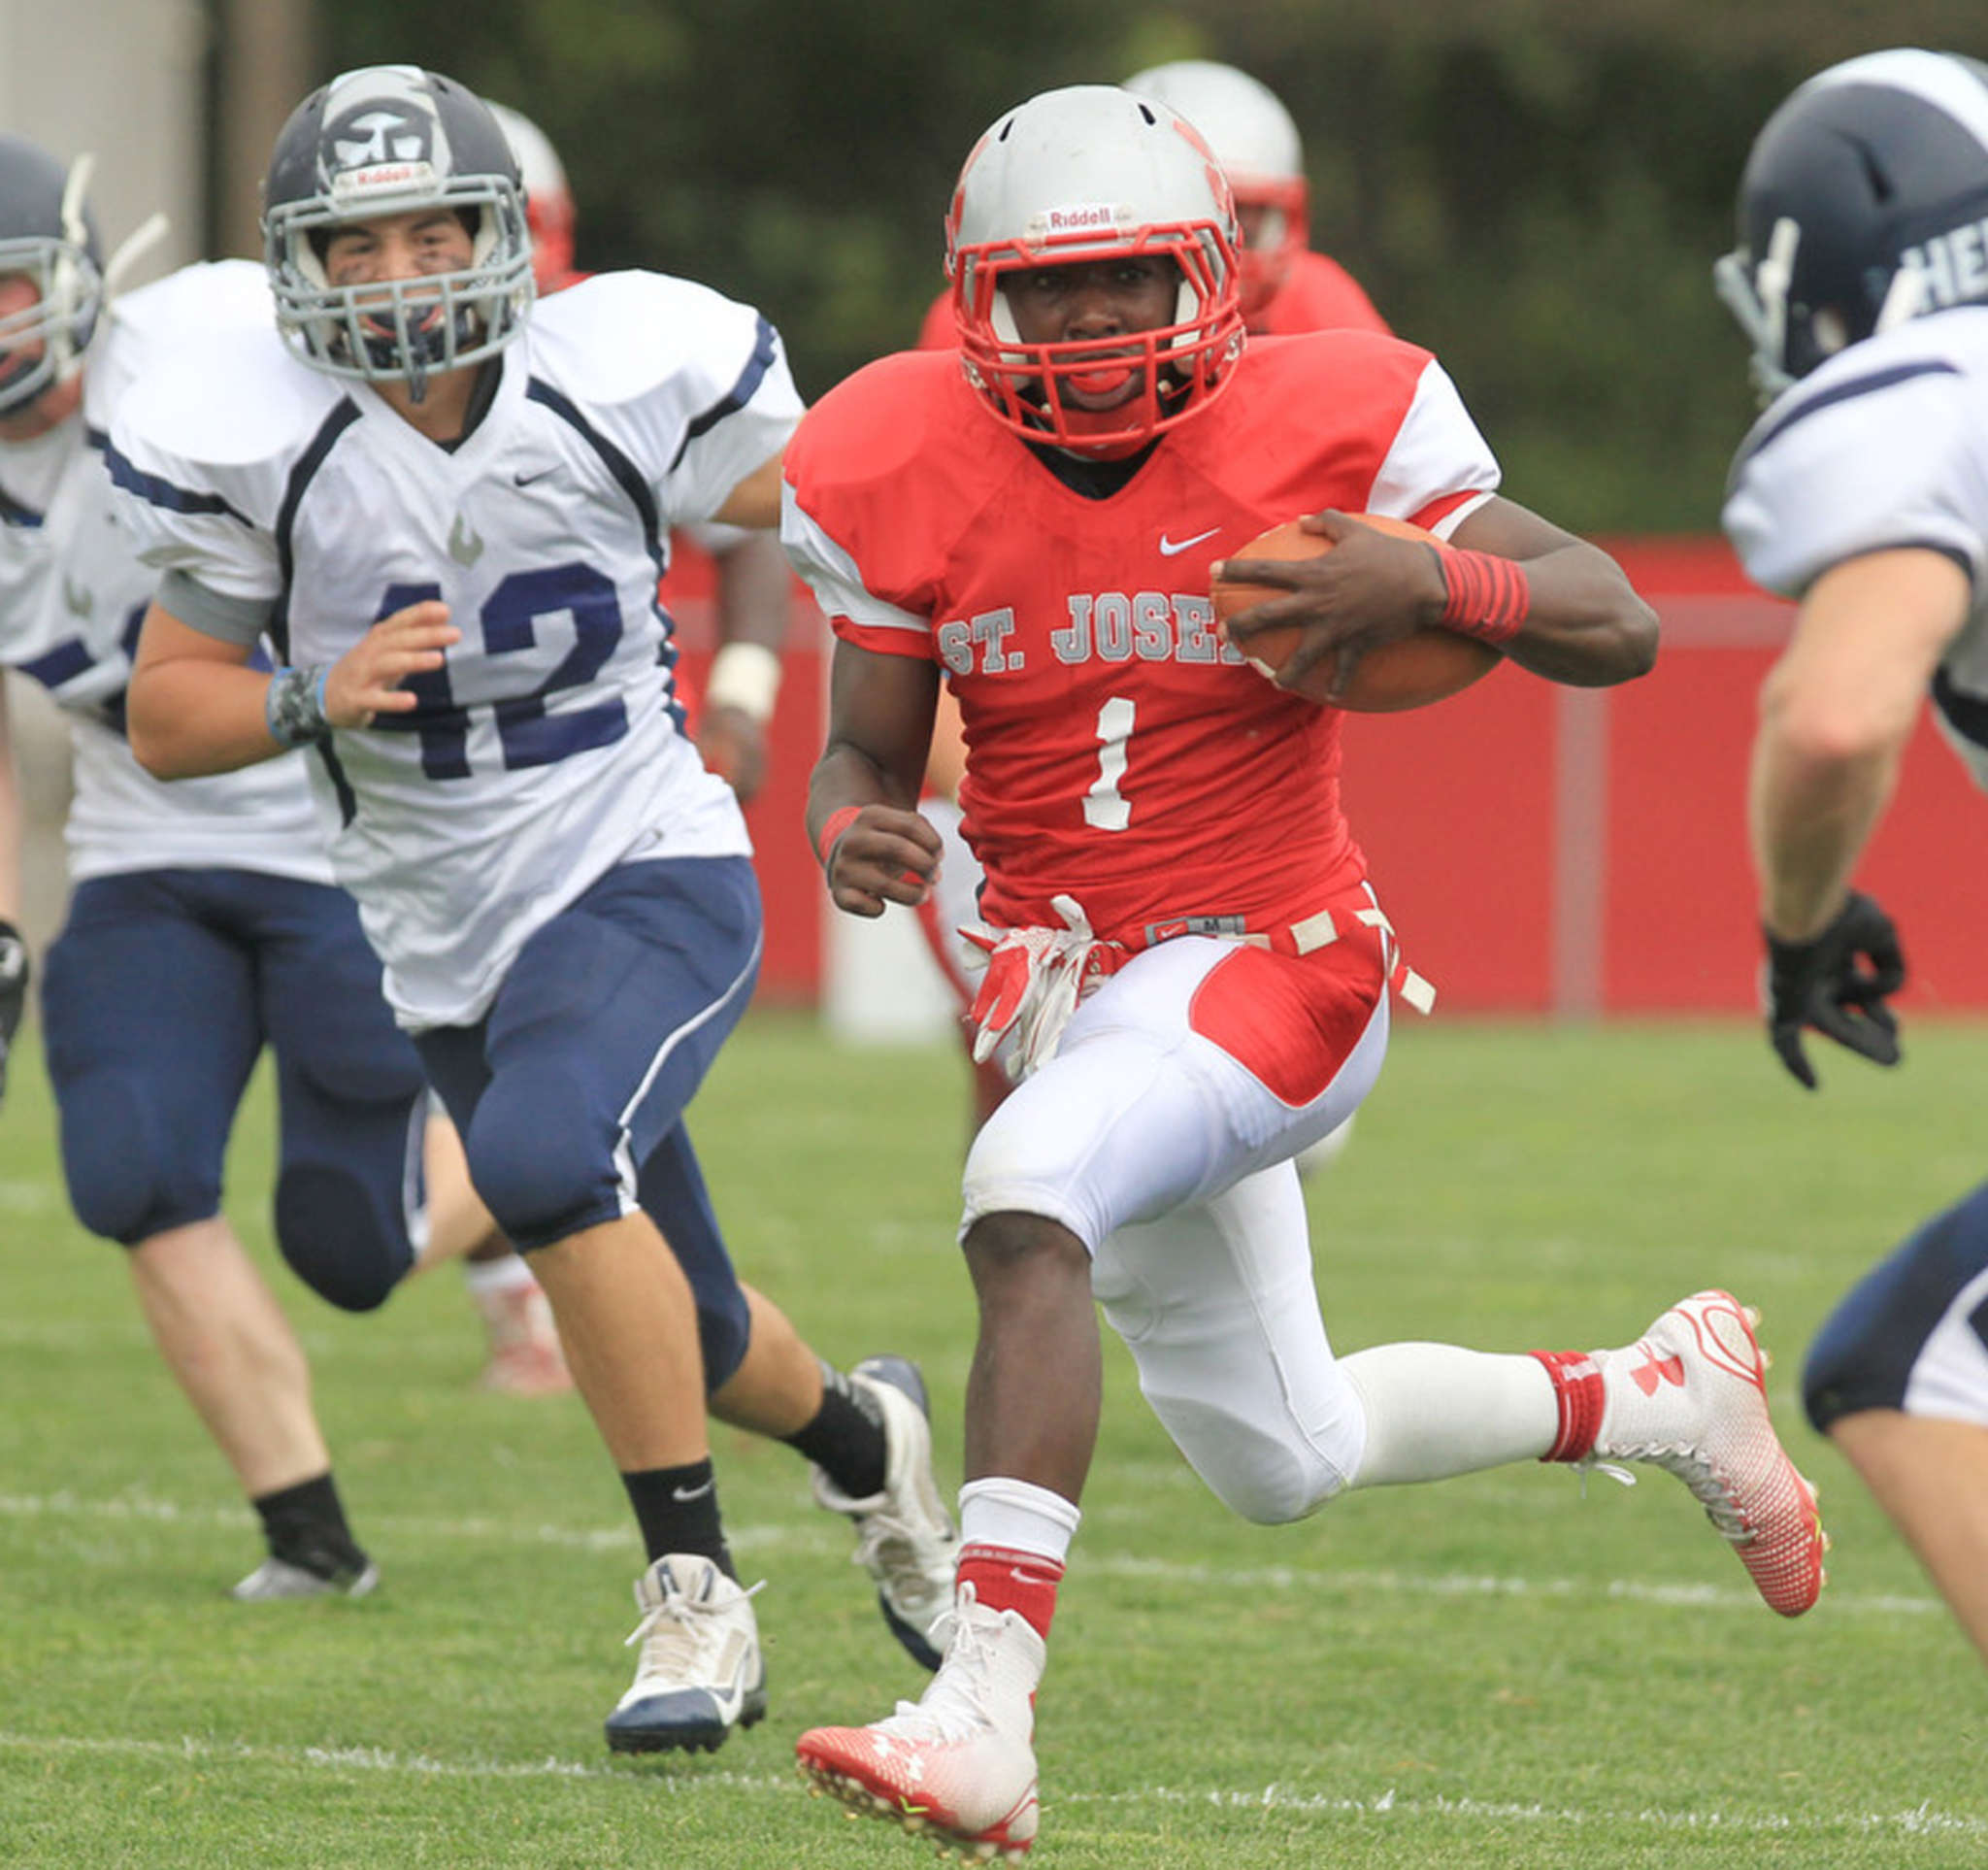 St. Joseph´s Salaam Horne picks up a long gain against St. Augustine in September. Many public schools are weary of losing to non-public powers, citing the recruitment advantage. Yet many public schools also have tuition students who are athletes.